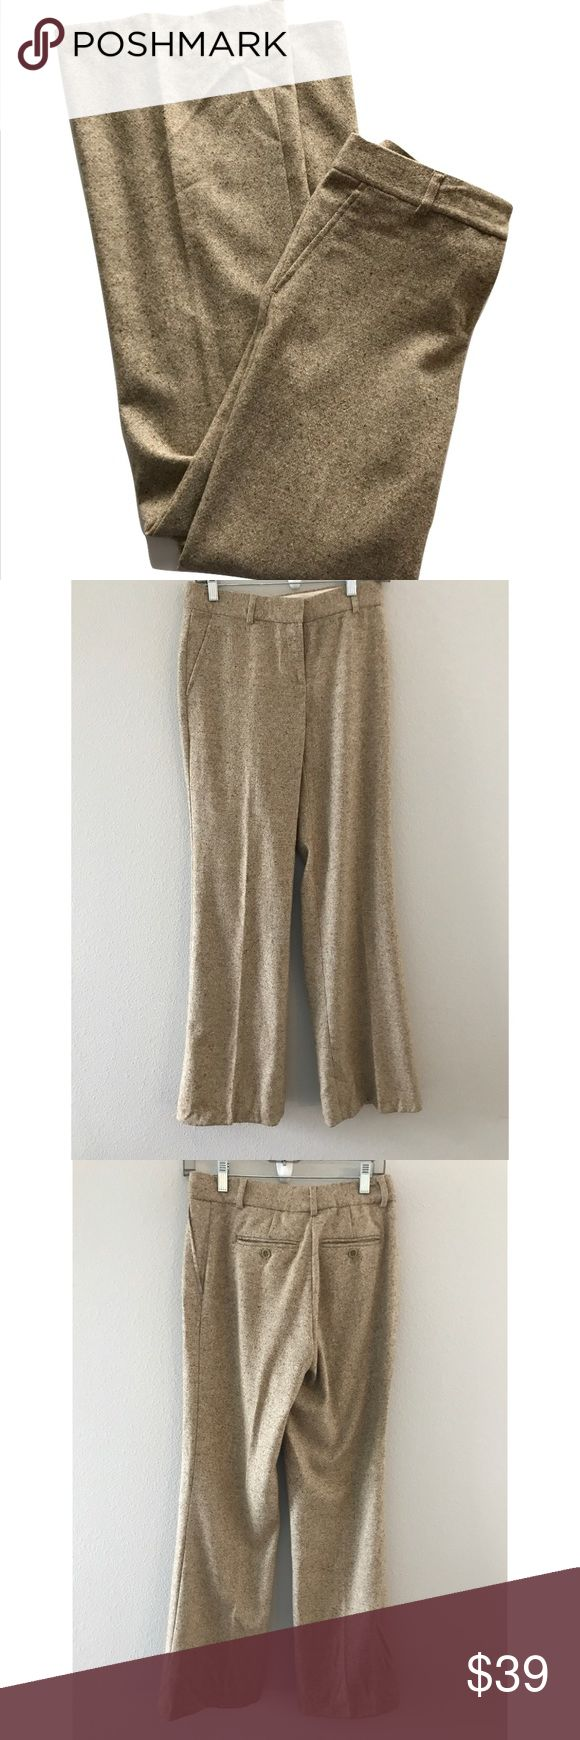 Theory Emery Wool Tweed wide leg pants trousers Theory Womens Emery Wool Flat Front Dress Pants Trousers 4    Size Origin: US Manufacturer Color: Camel/Tan/Brown Retail: $265.00 Condition: Excellent pre-owned Fit: Style Type: Dress Pants Collection: Theory Bottom Closure: Hook/Bar Zip Fly Waist Across: 15 Inches Inseam: 34 Inches Rise: 8.5 Inches Hips Across: 15 1/2 Inches Leg Opening: 22 Inches Front Style: Flat Front Back Pockets: Slit Pockets Material: 96% Wool/4% Lycra Fabric Type: Wool…